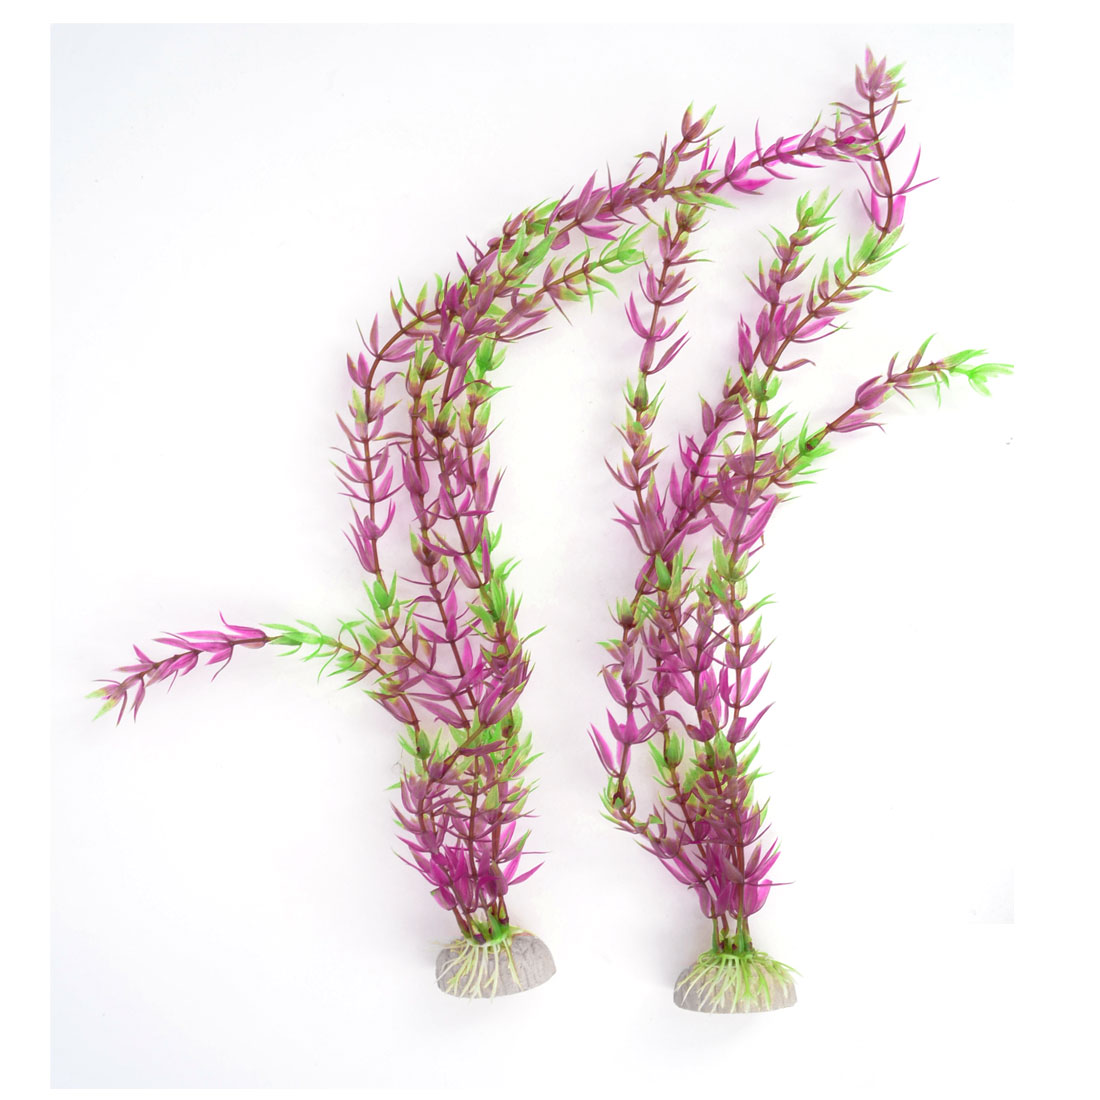 2 Pcs Aquarium Ceramic Base Plastic Simulation Plant Grass Decor Green Purple